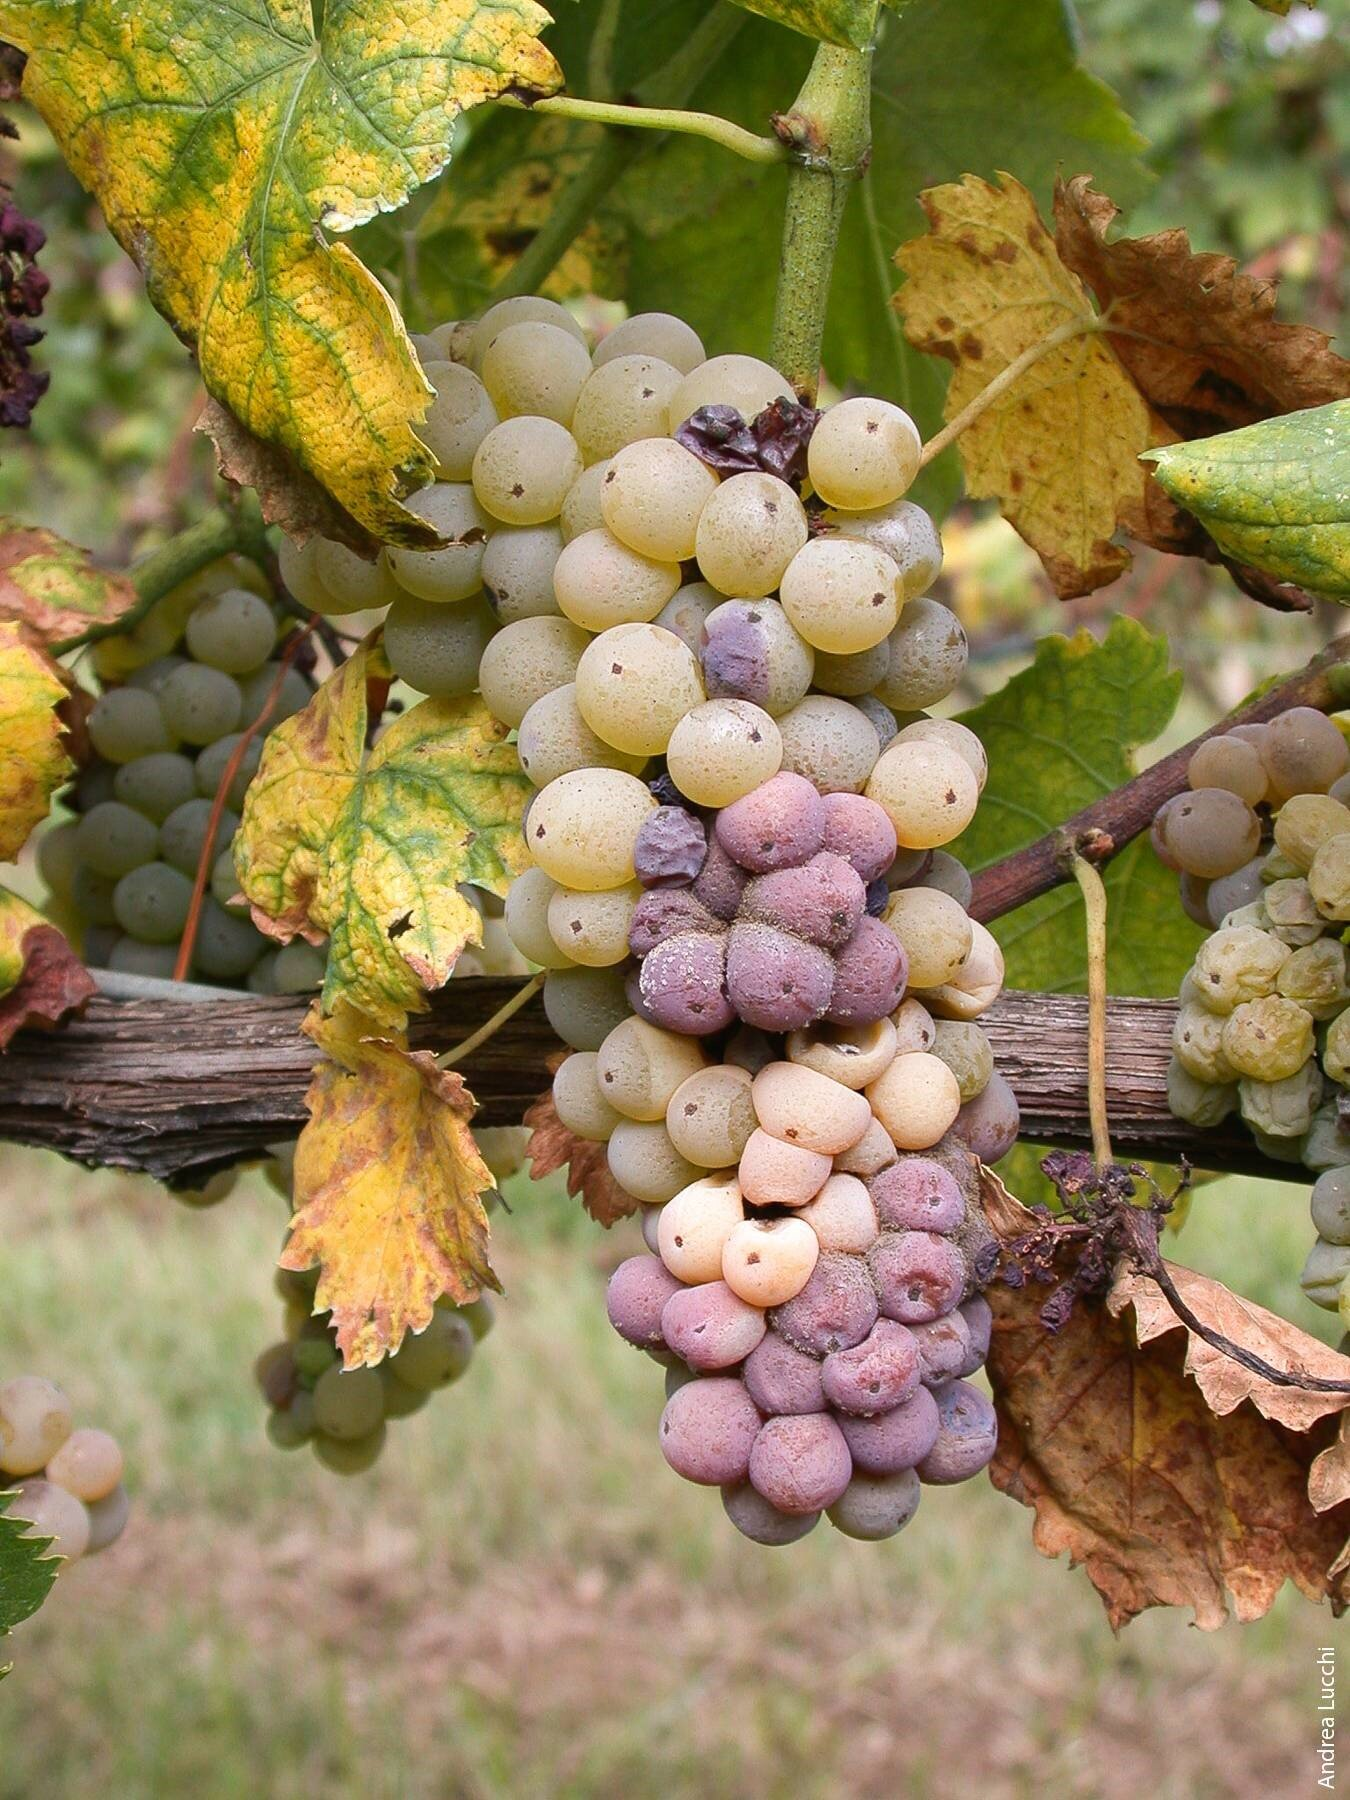 Rotting grape image by Andrea Lucchi , University of California